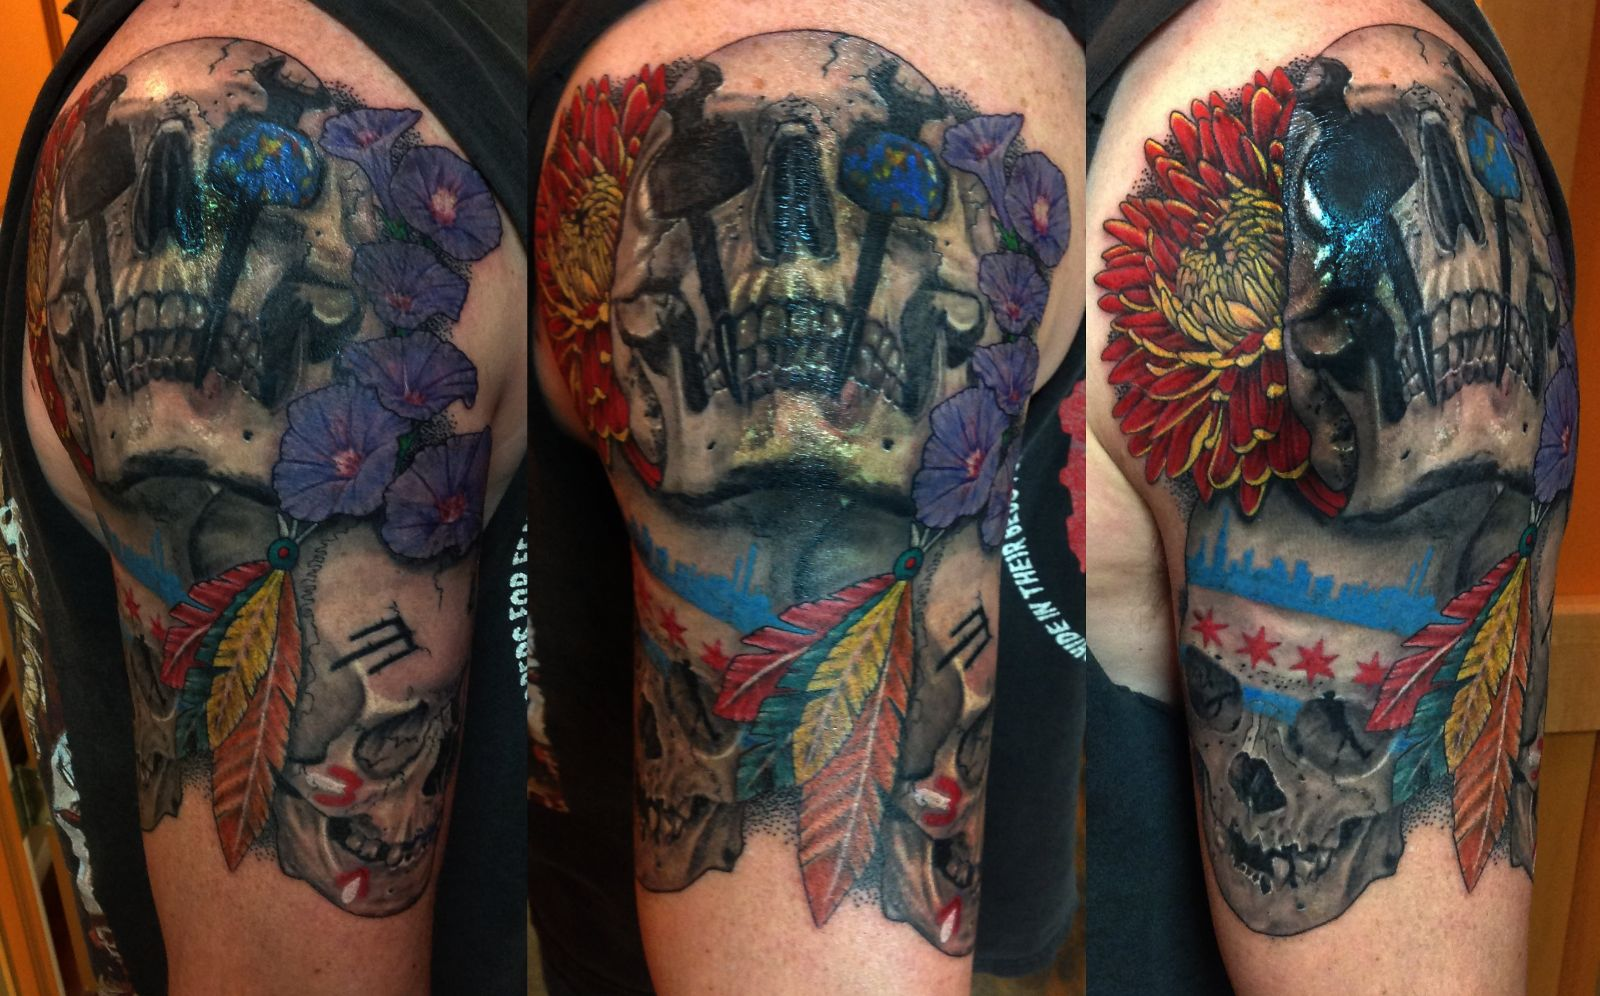 Tattoo city skin art studio the skulls are iron working the city of chicago and the chicago blackhawks the flowers and the opal in the skulls eye represent his family buycottarizona Images